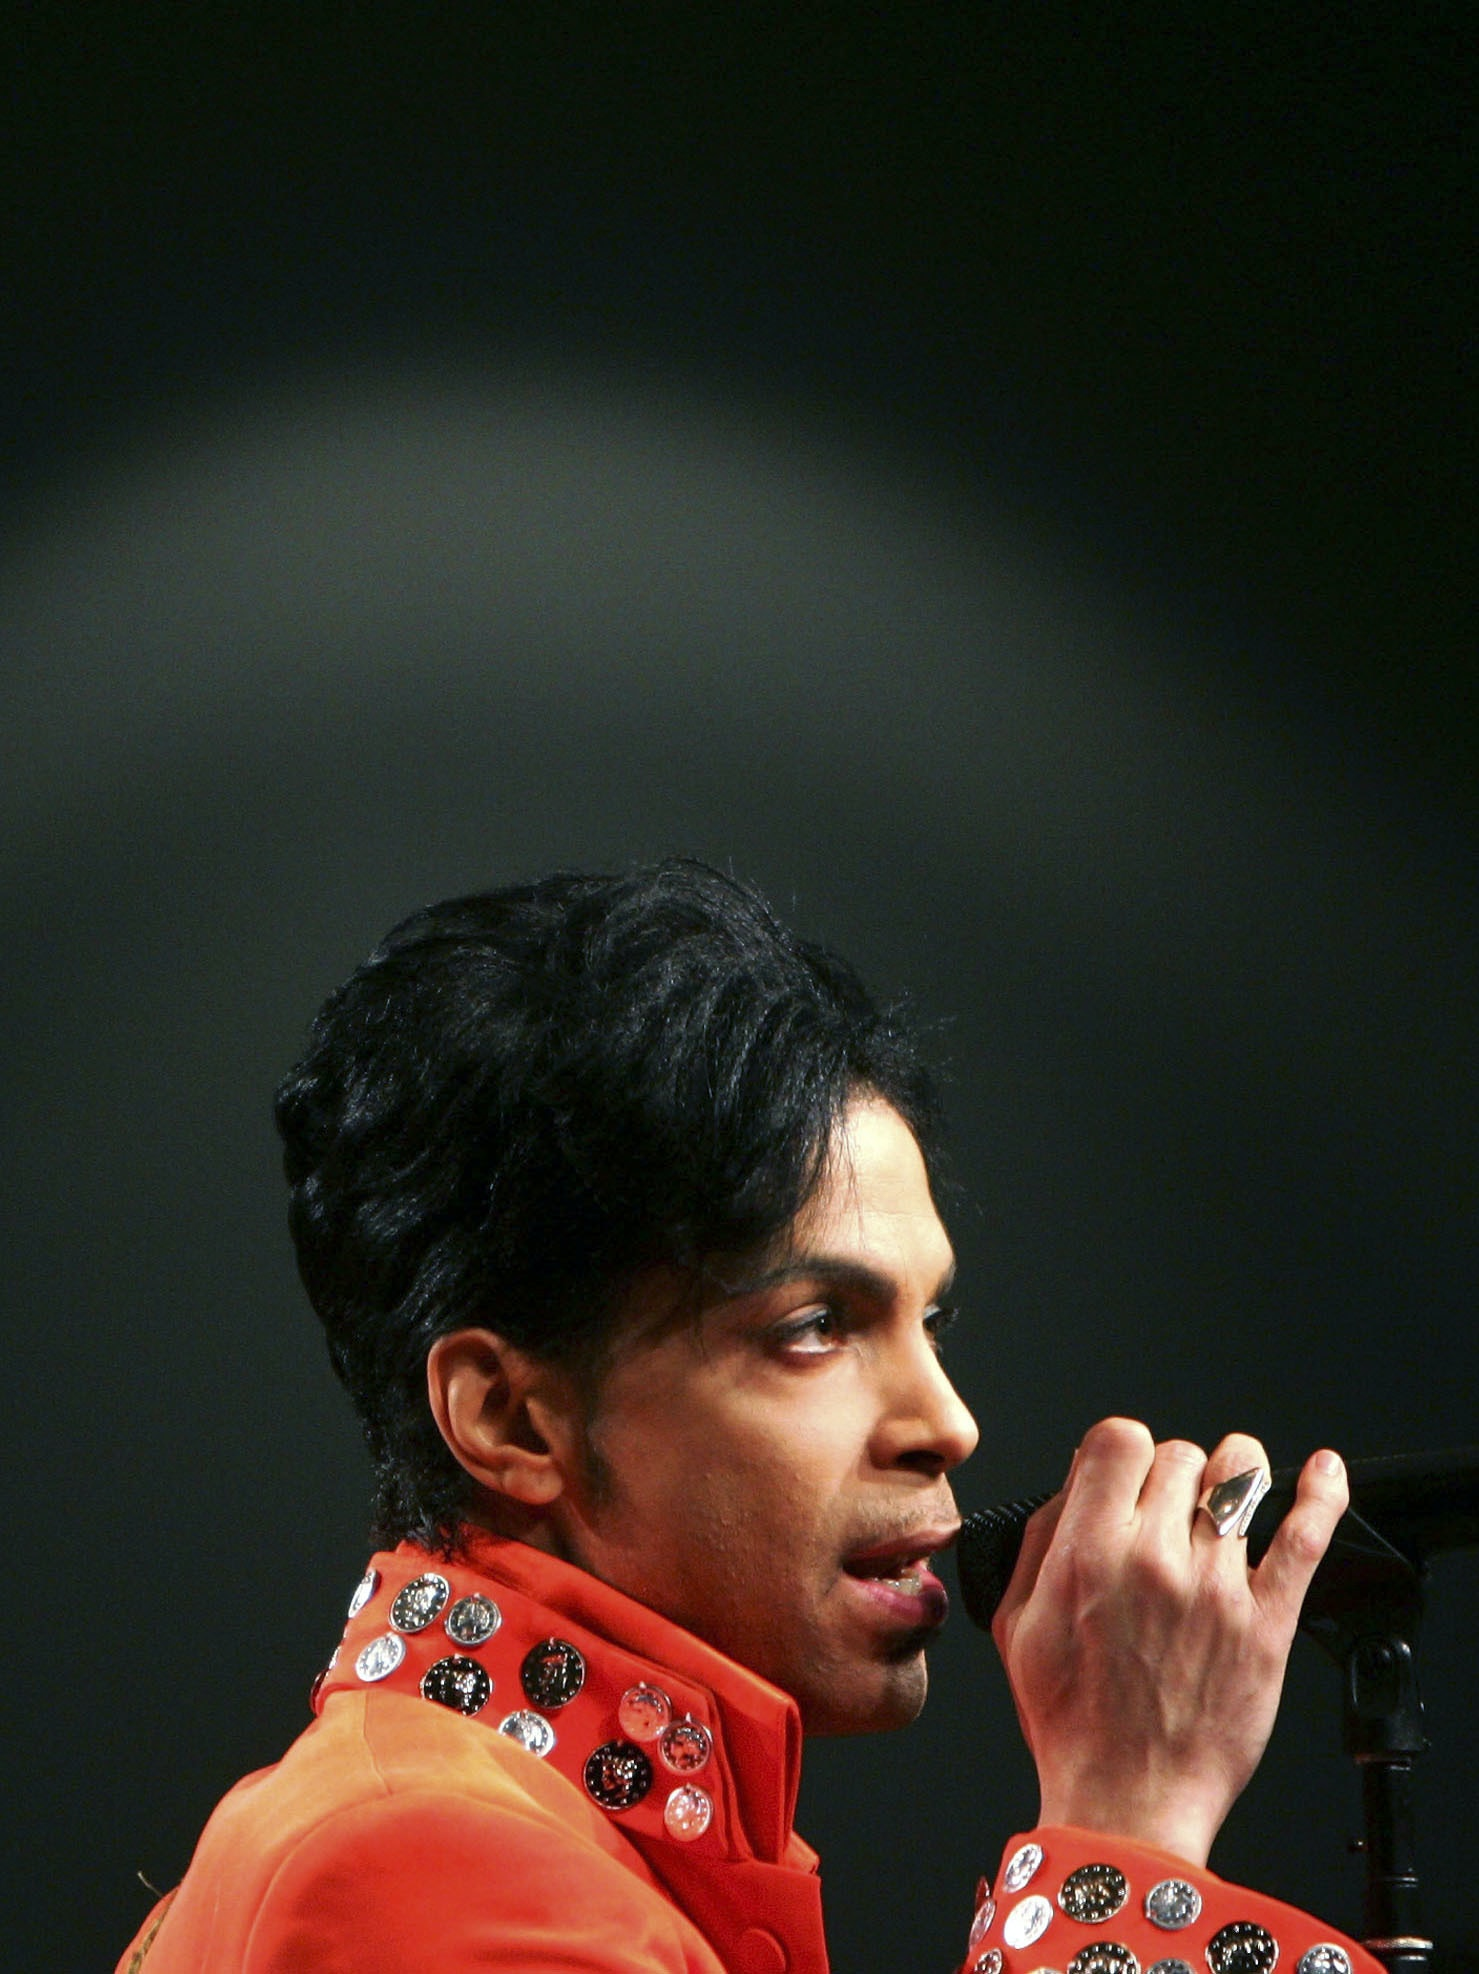 Prince, 1990s, Albums, Best, Recommended, 2000s